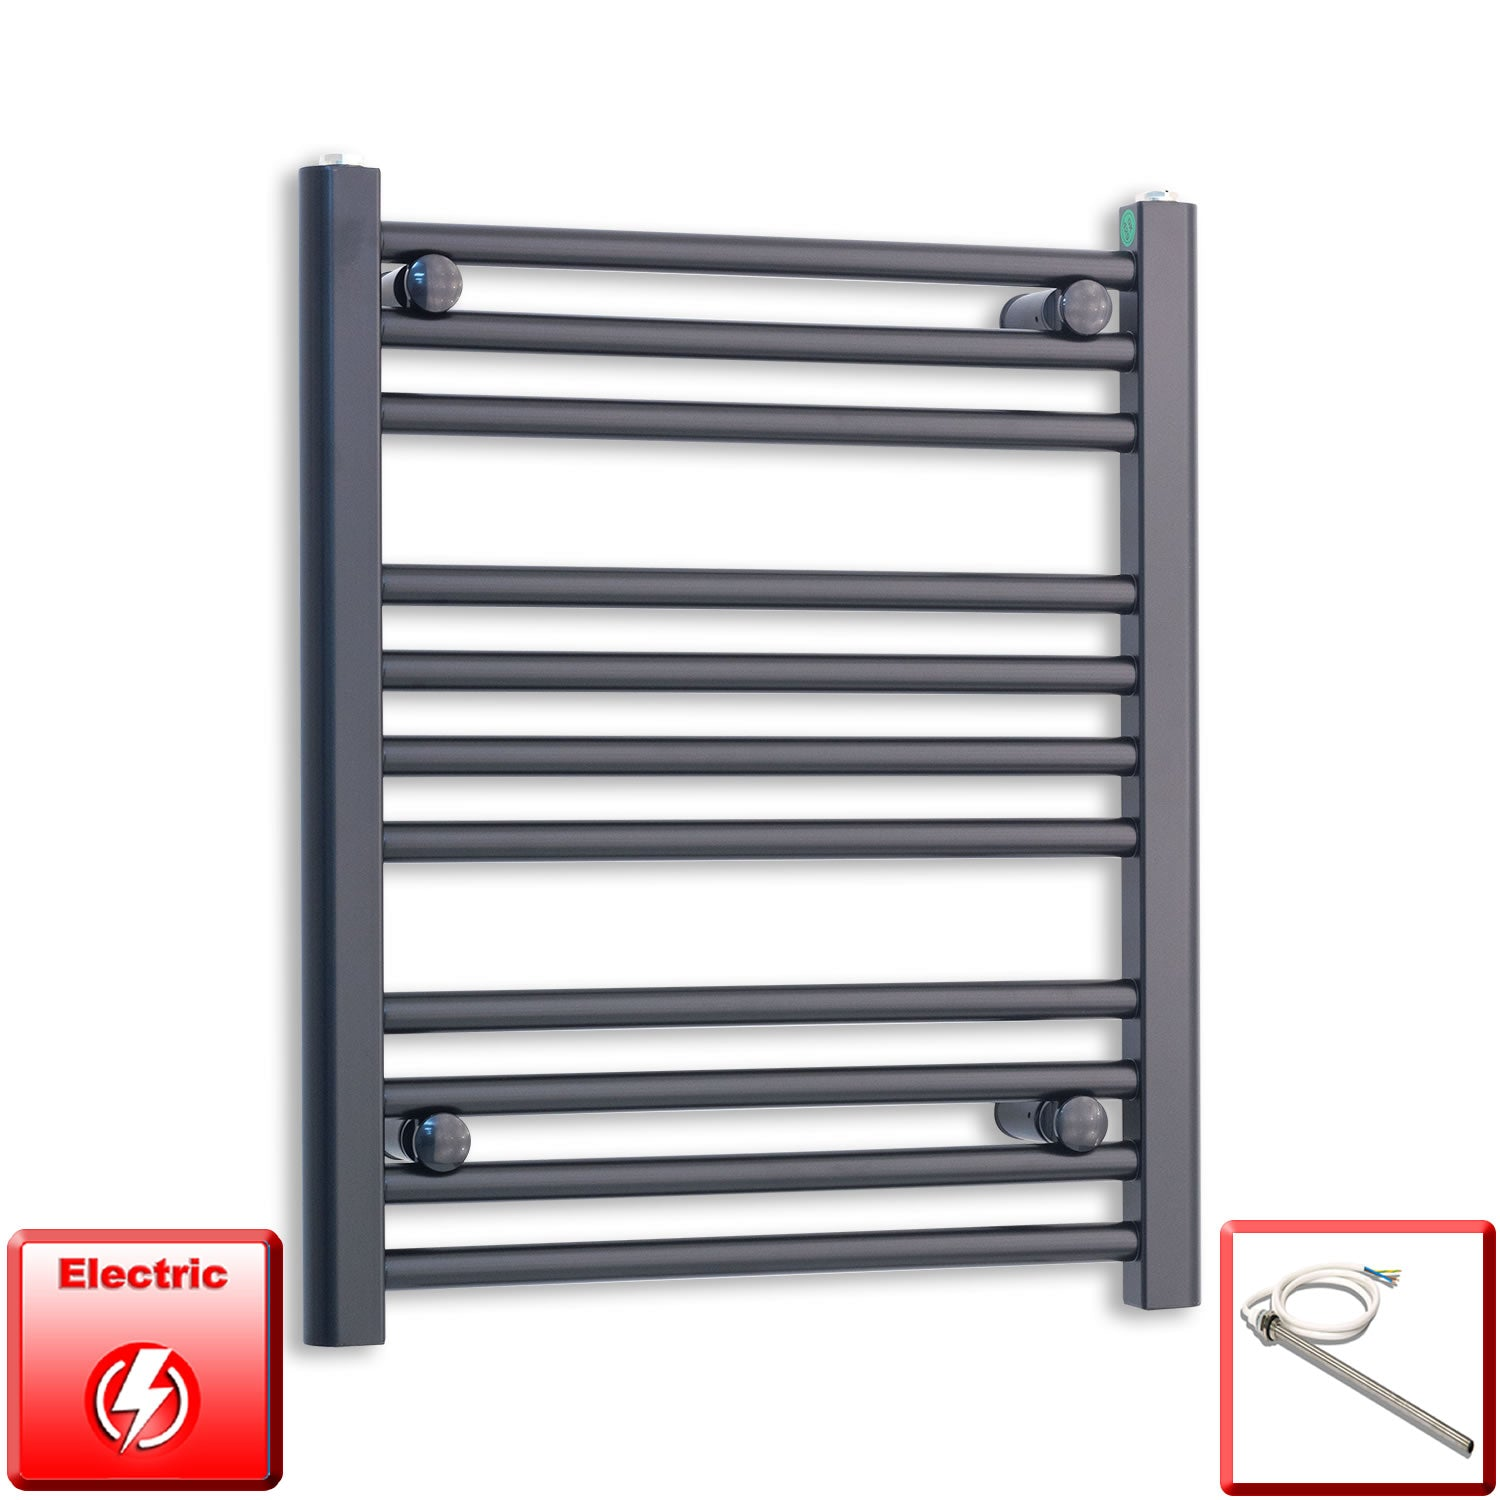 600mm Wide 600mm High Pre-Filled Black Electric Towel Rail Radiator With Single Heat Element